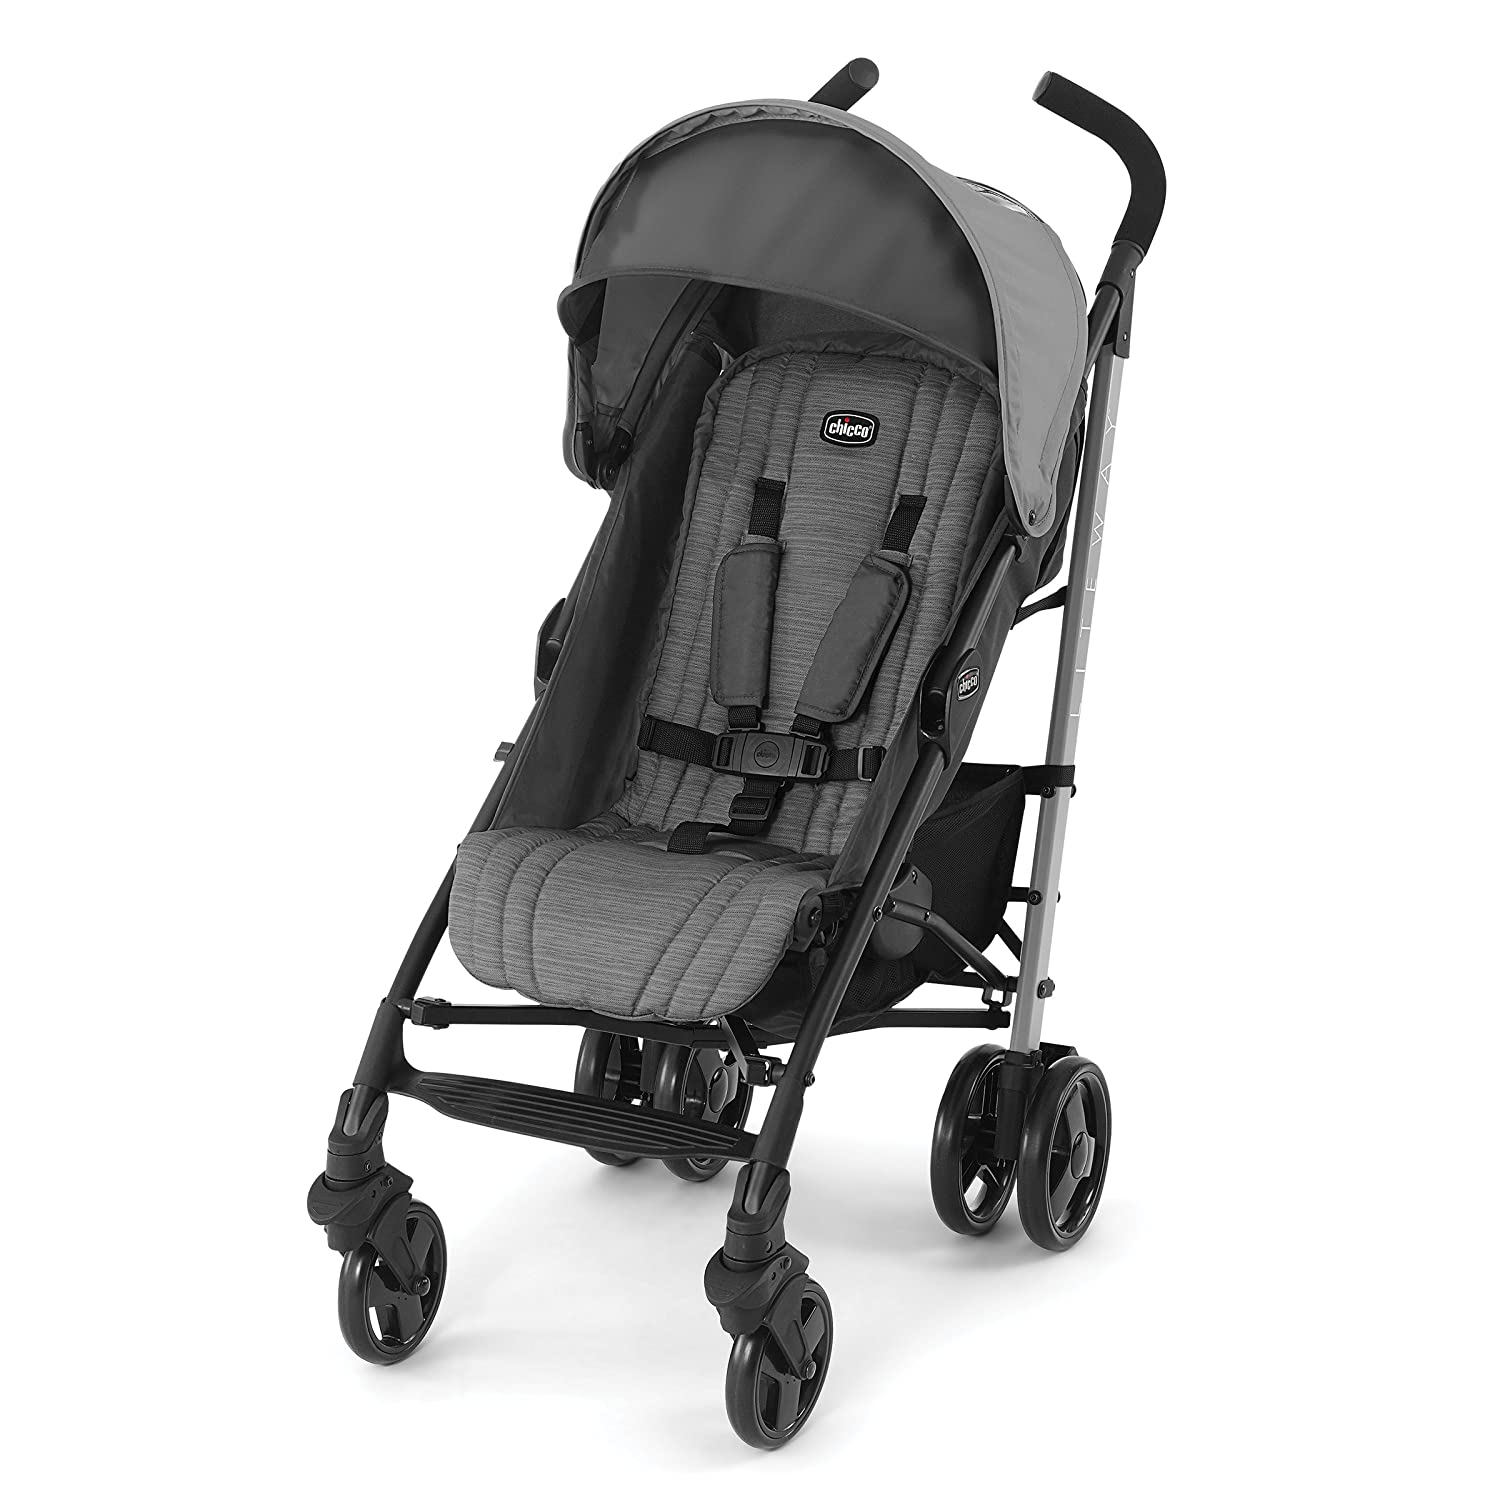 Amazon.com: Chicco Liteway Cochecito: Baby